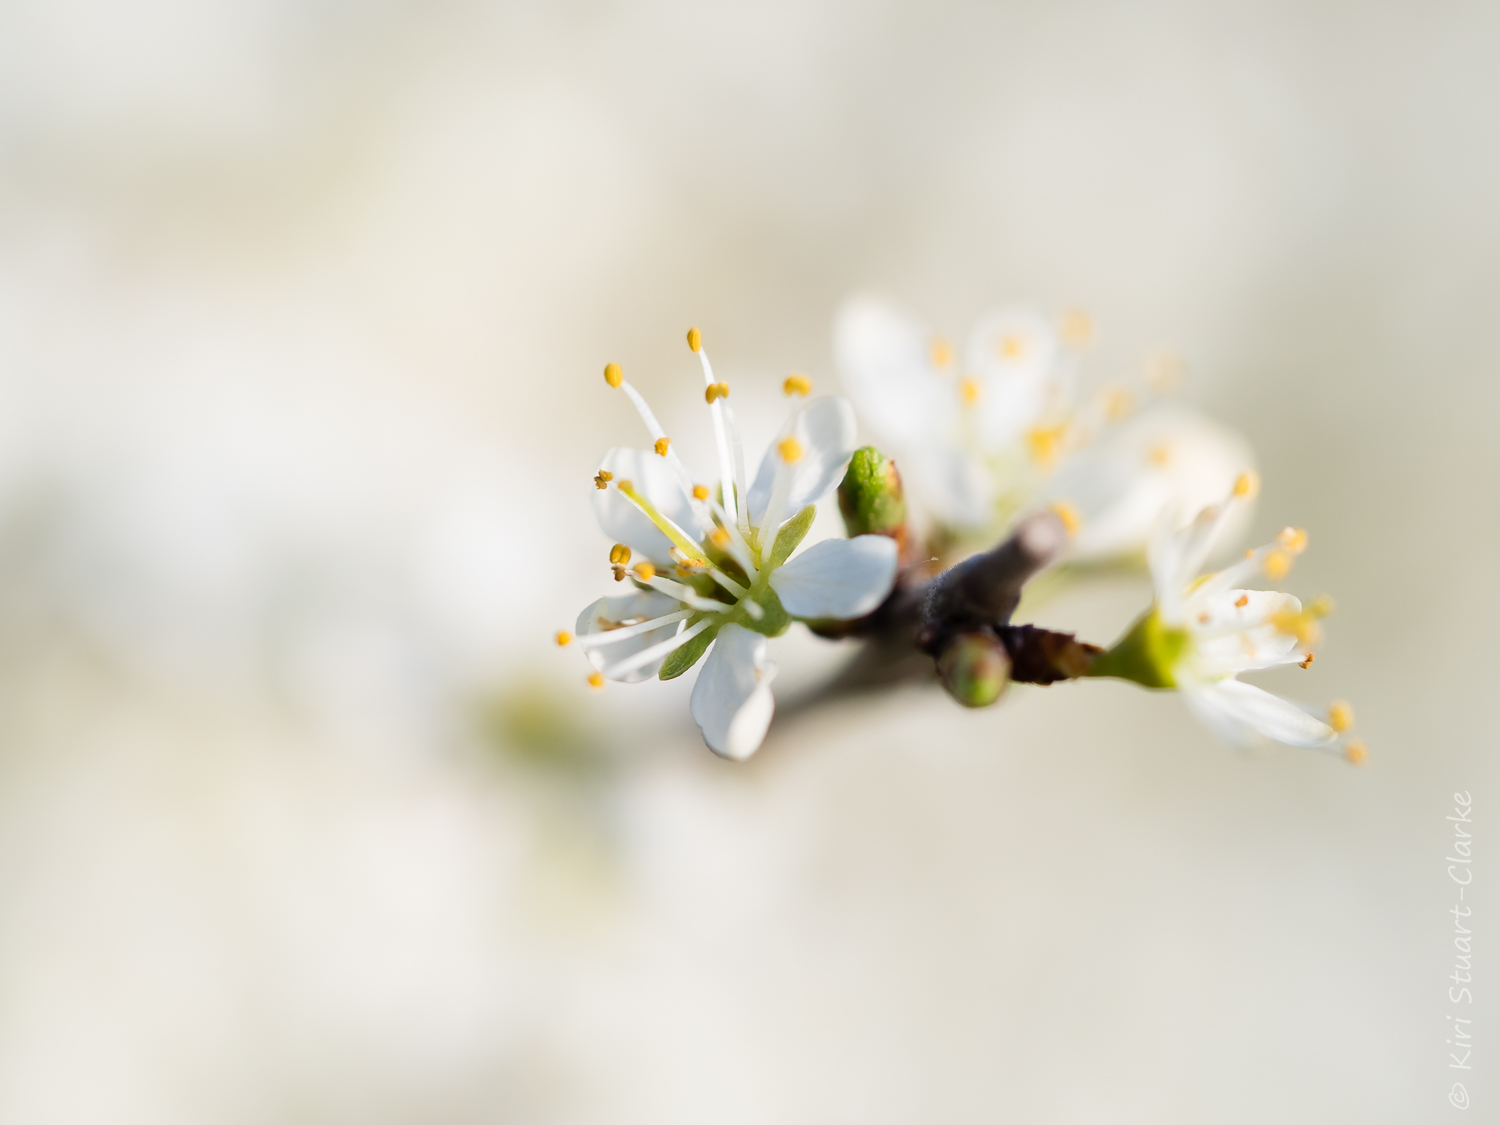 White Blackthorn blossom full frame